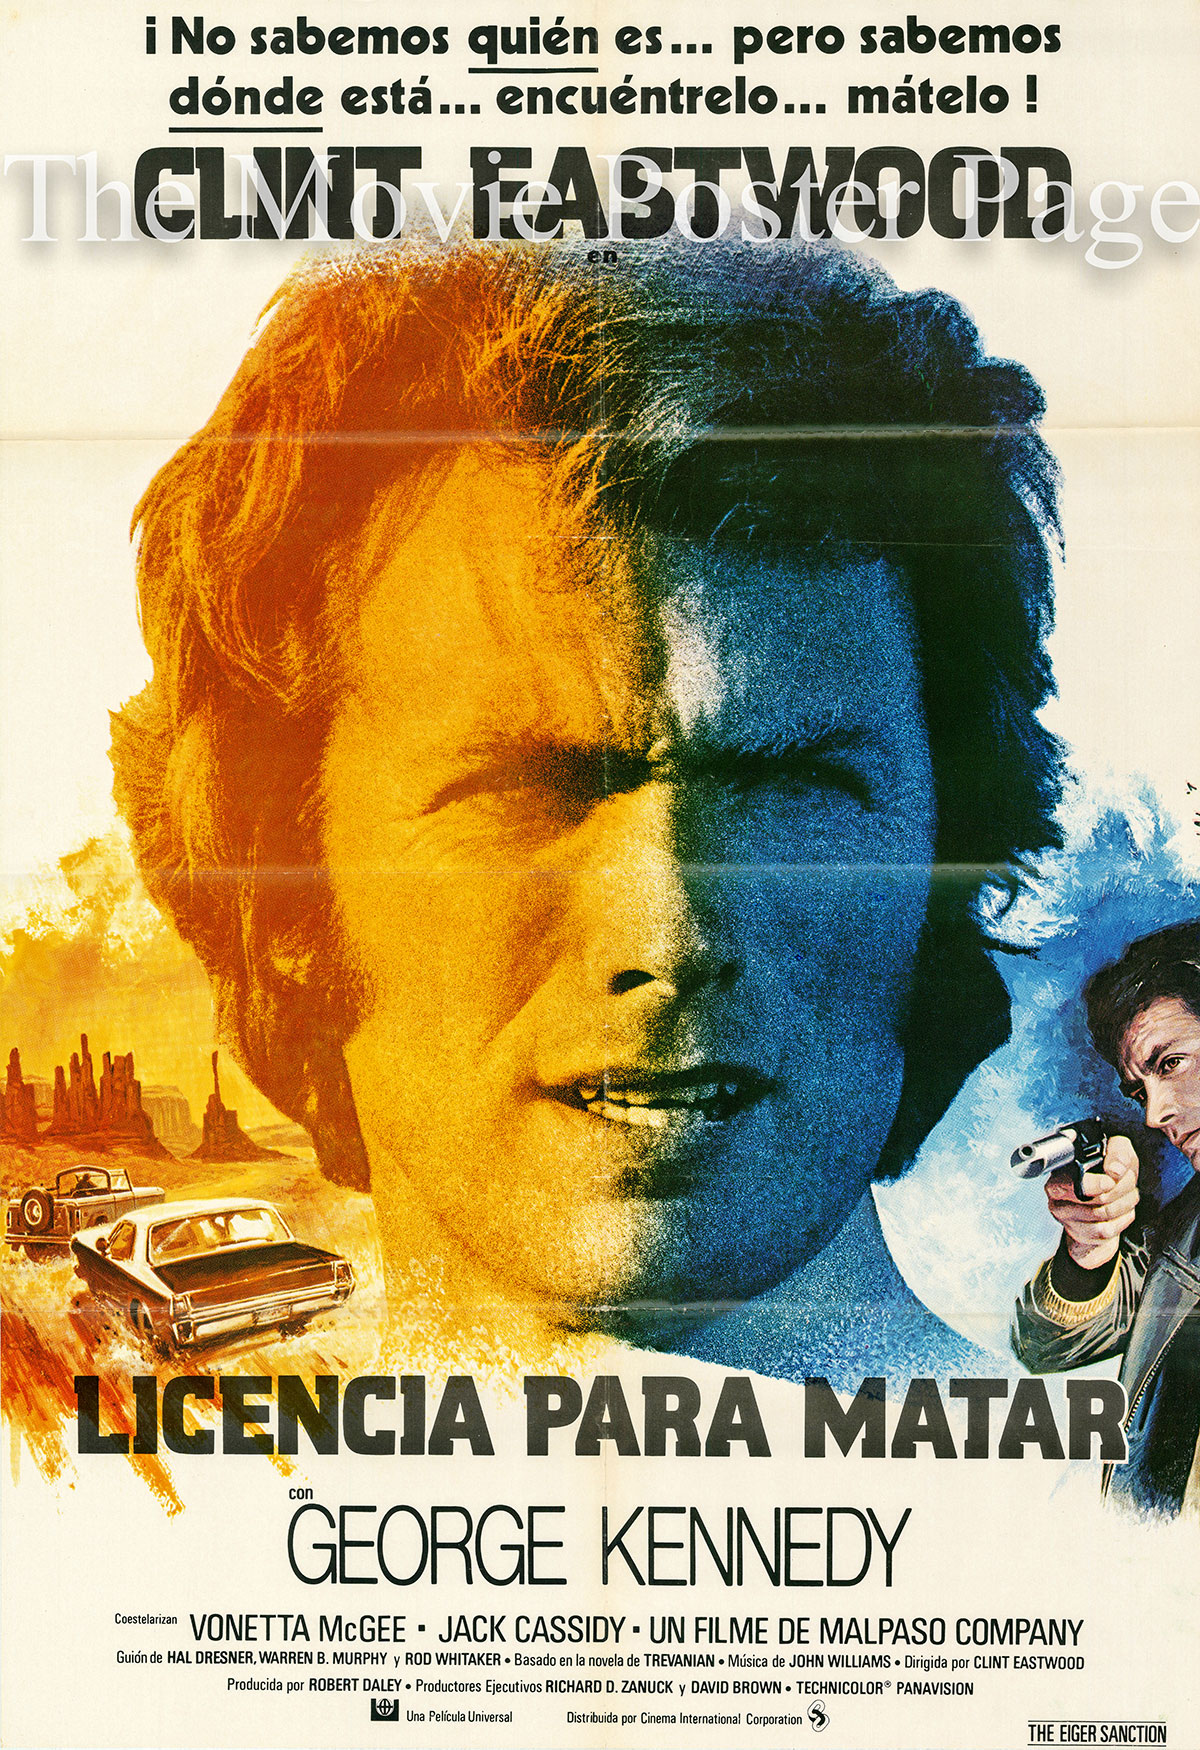 Pictured is a Spanish one-sheet poster designed by Jean Mascii to promote the 1975 Clint Eastwood film The Eiger Sanction starring Clint Eastwood as Jonathan Hemlock.